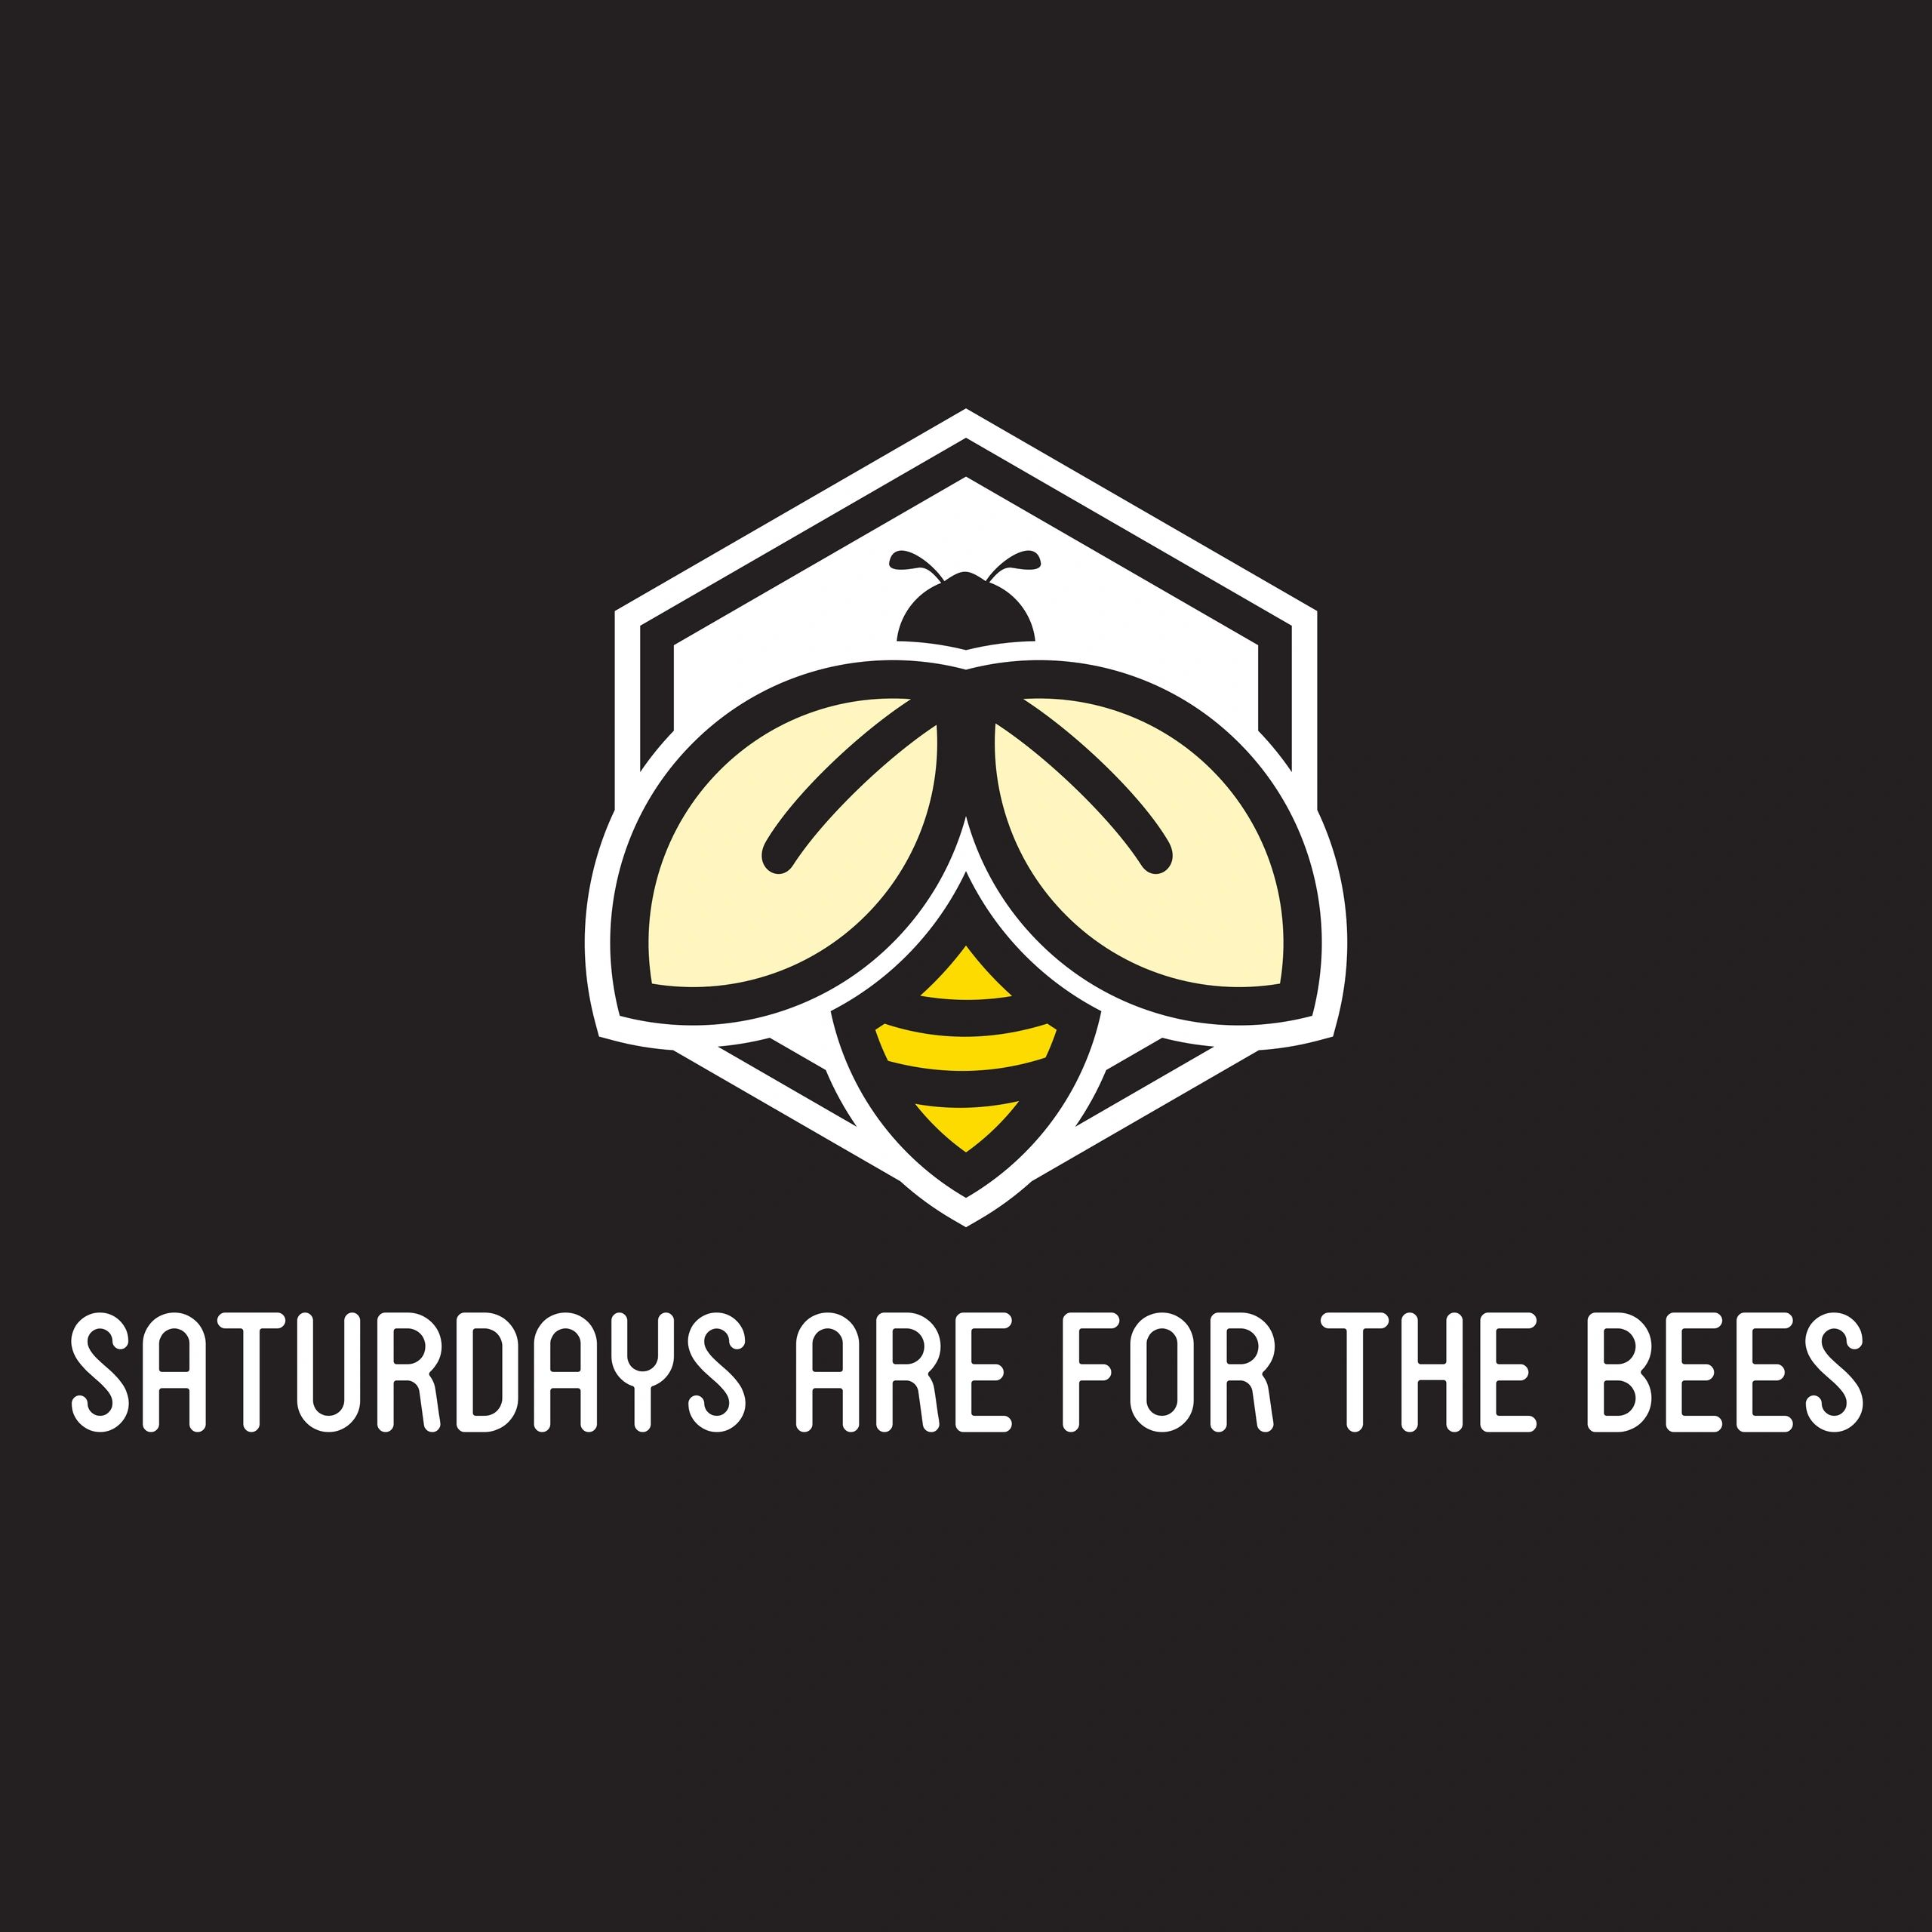 We are buy high school students with full schedules, but Saturdays are for the Bees!